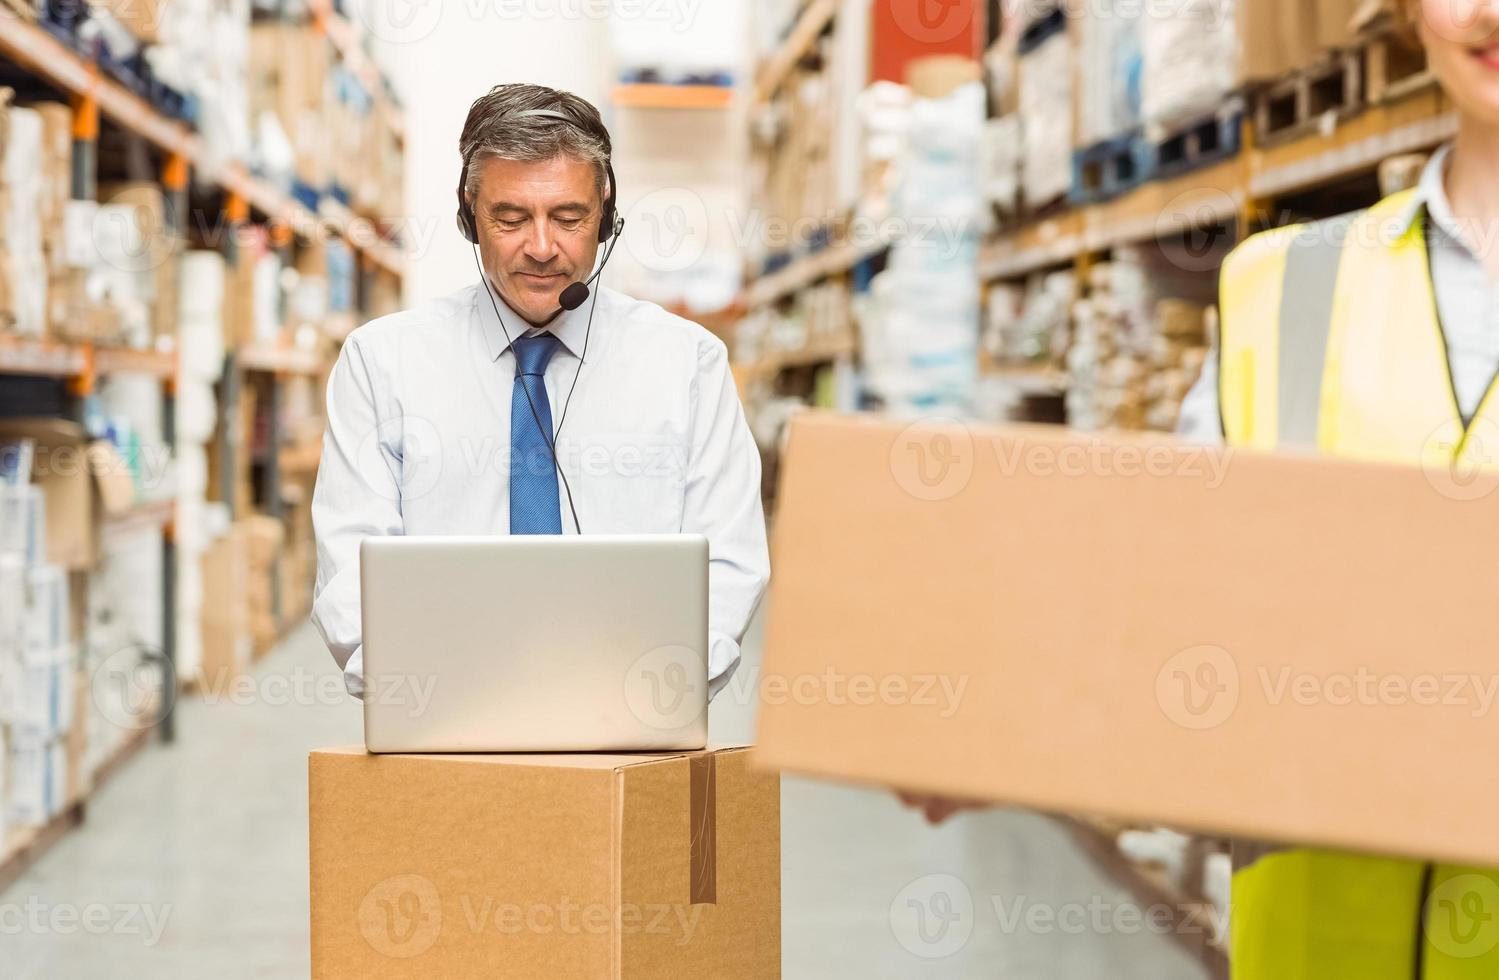 Warehouse manager working on computer photo